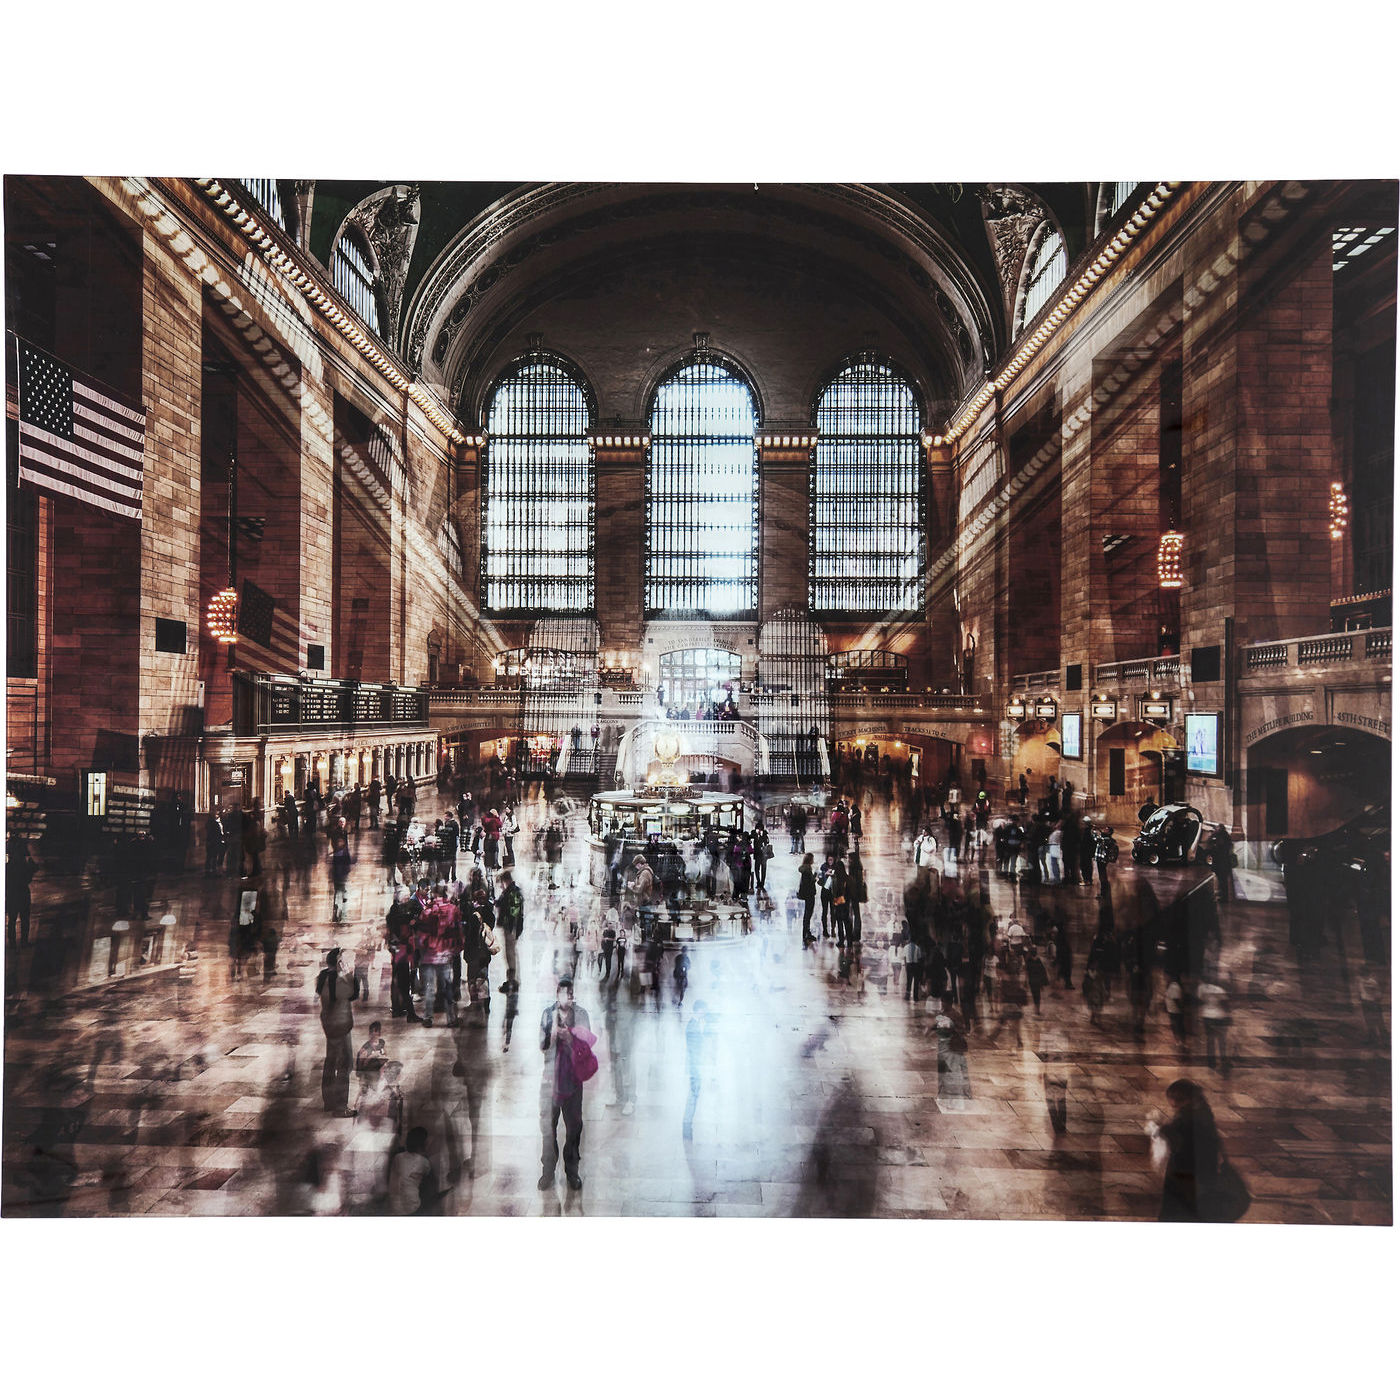 bild glasbild wandbild raumbild architektur grand central station neu kare ebay. Black Bedroom Furniture Sets. Home Design Ideas